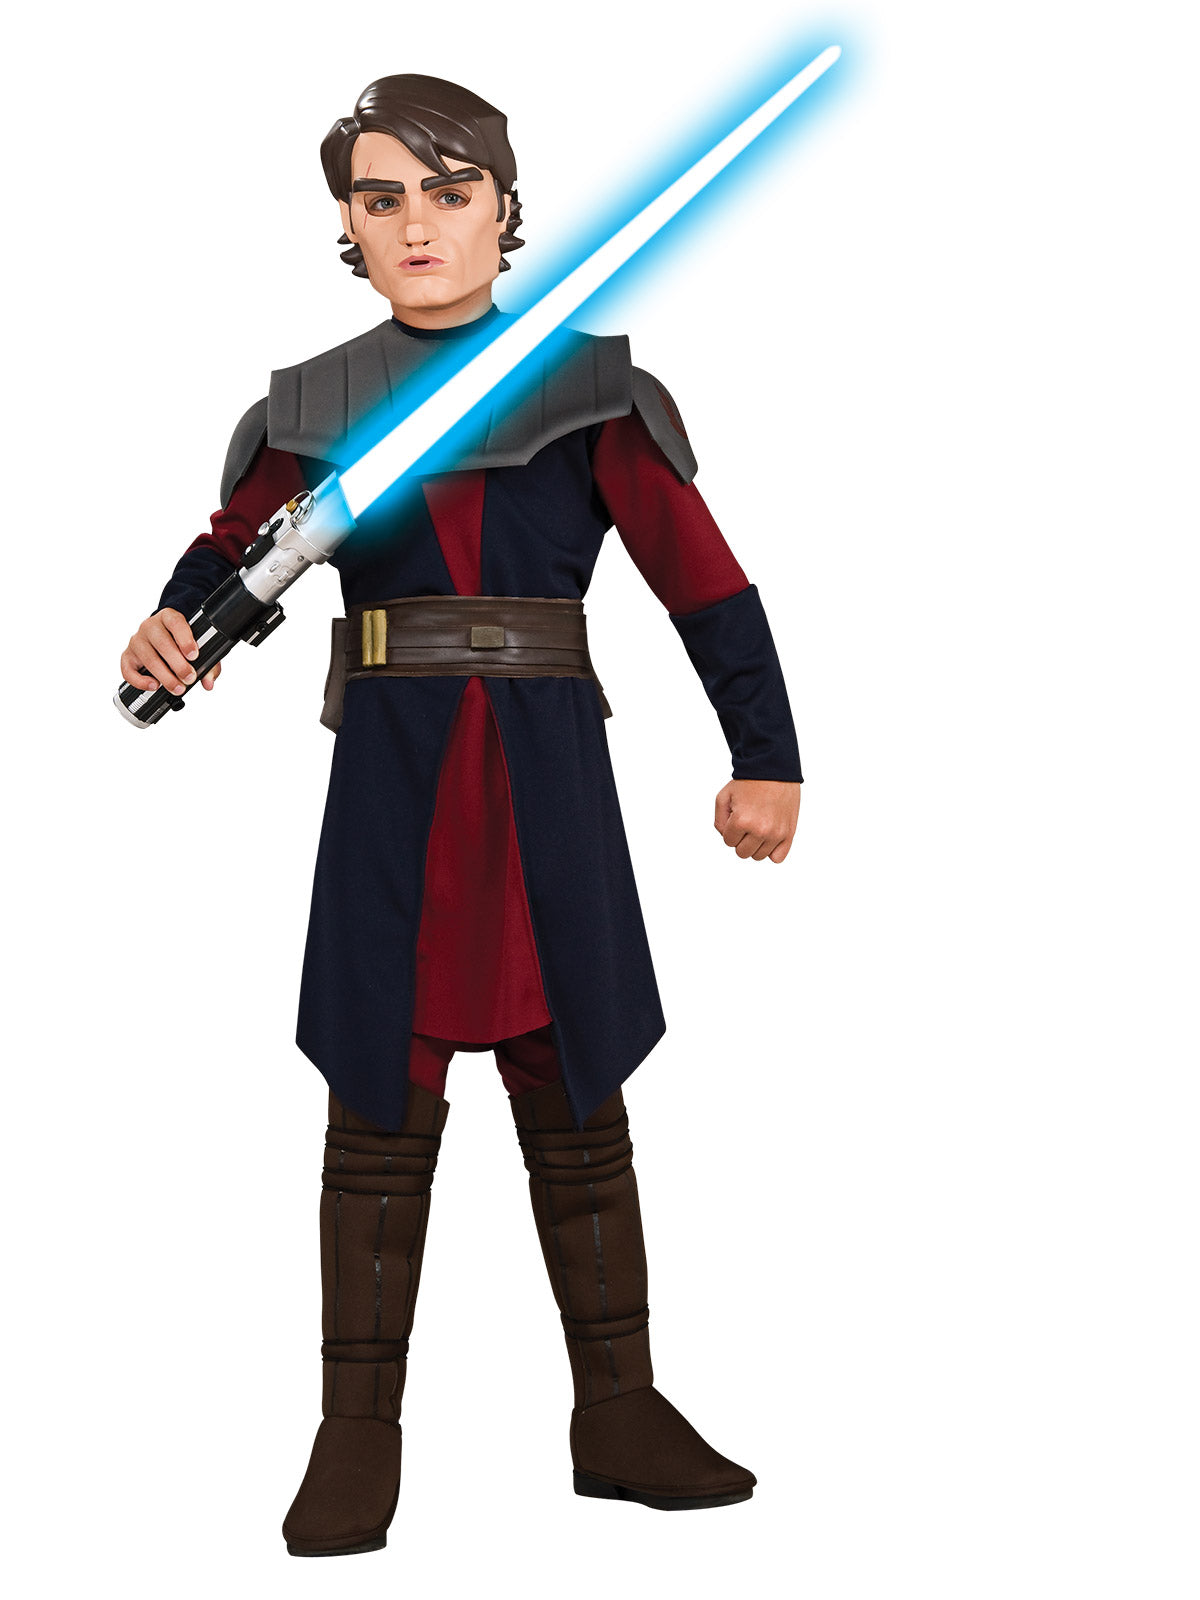 Anakin Skywalker Clone Wars Deluxe Child Costume - Buy Online Only